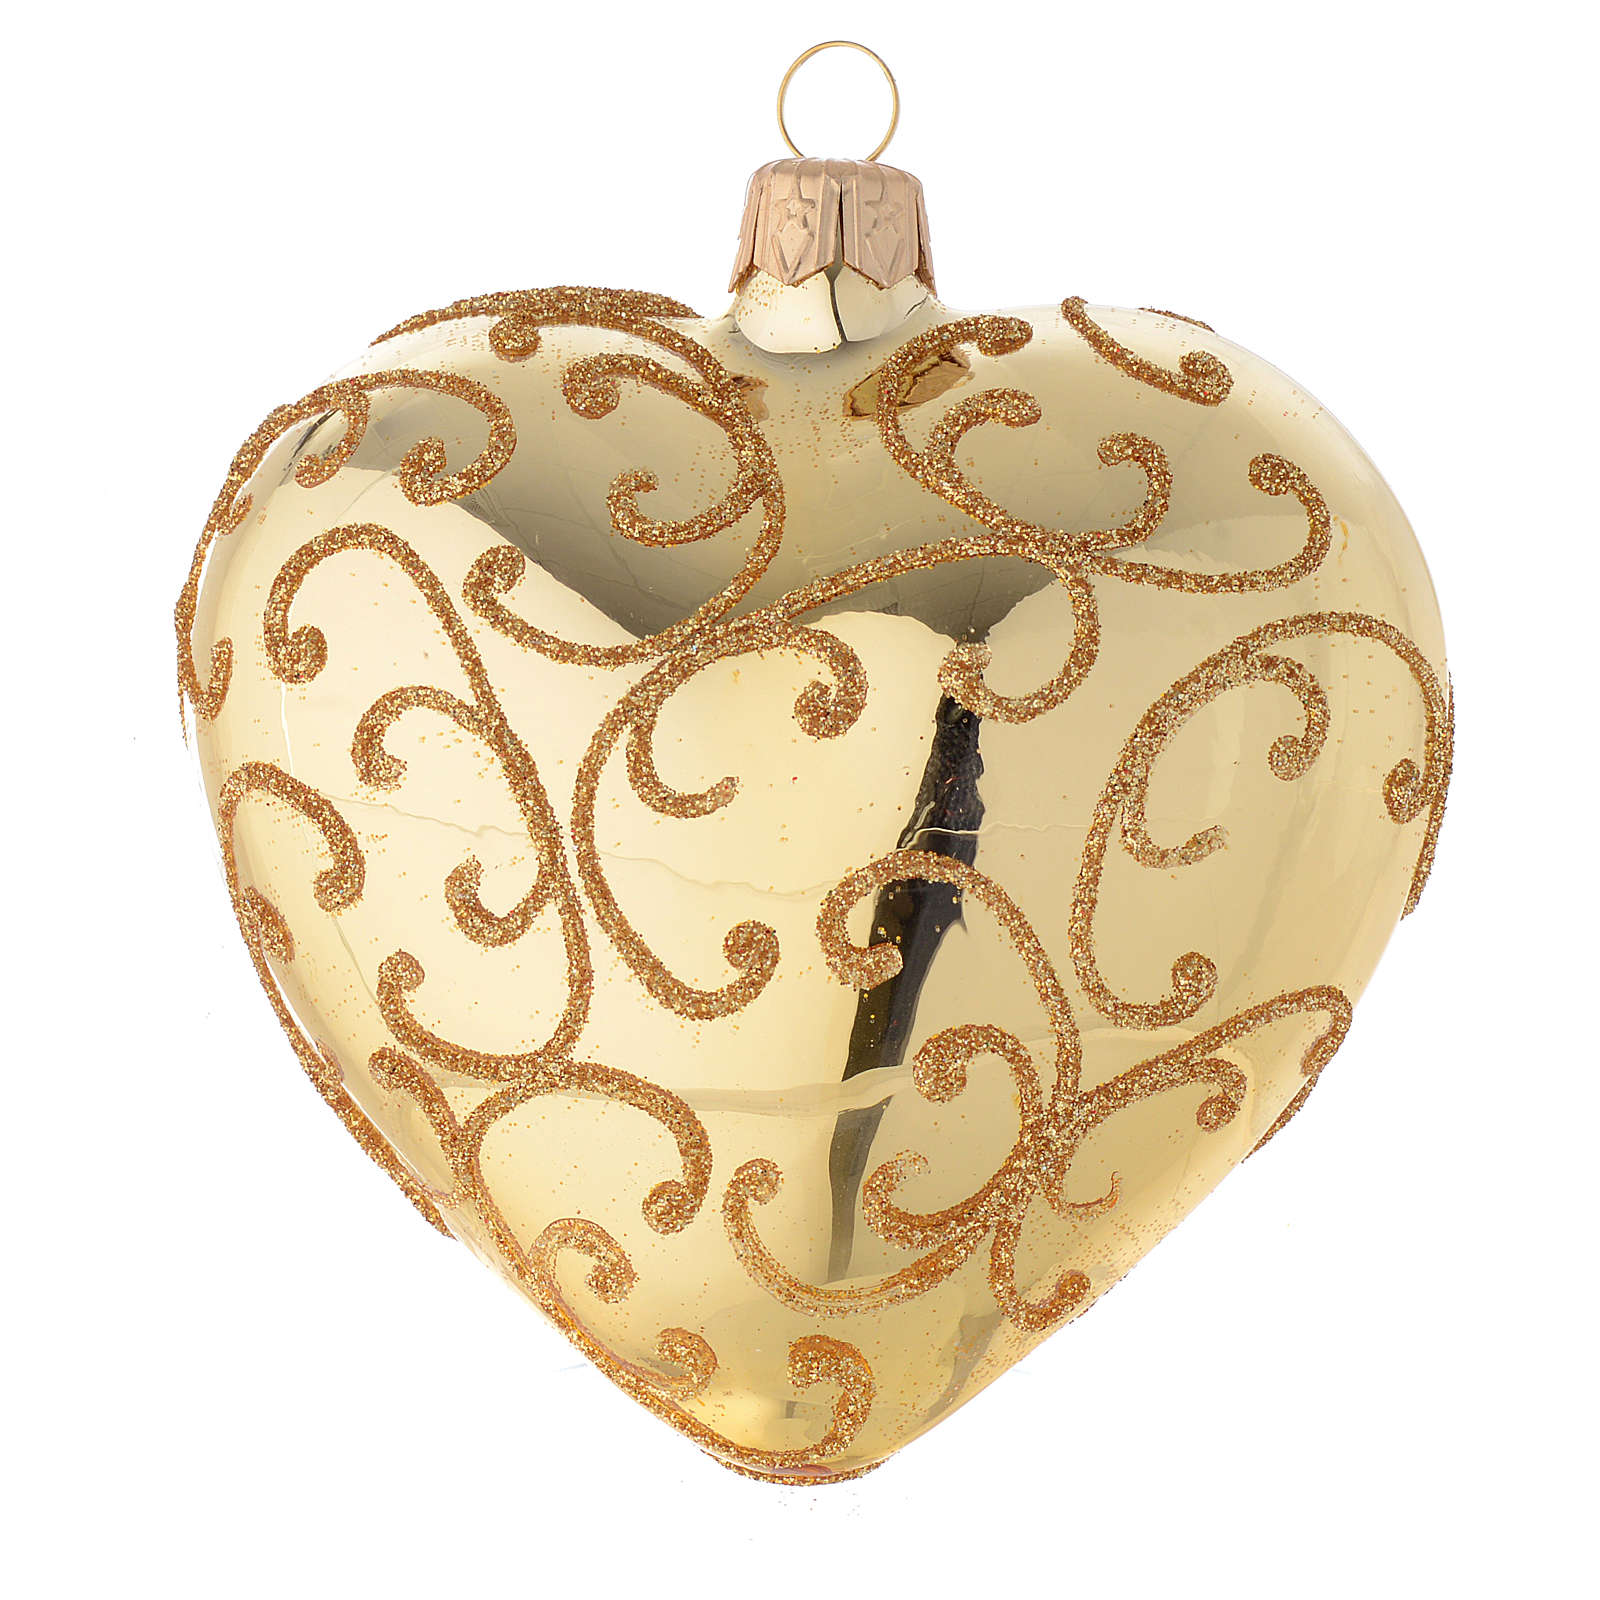 Heart Shaped Bauble in gold blown glass with golden motif 100mm 4